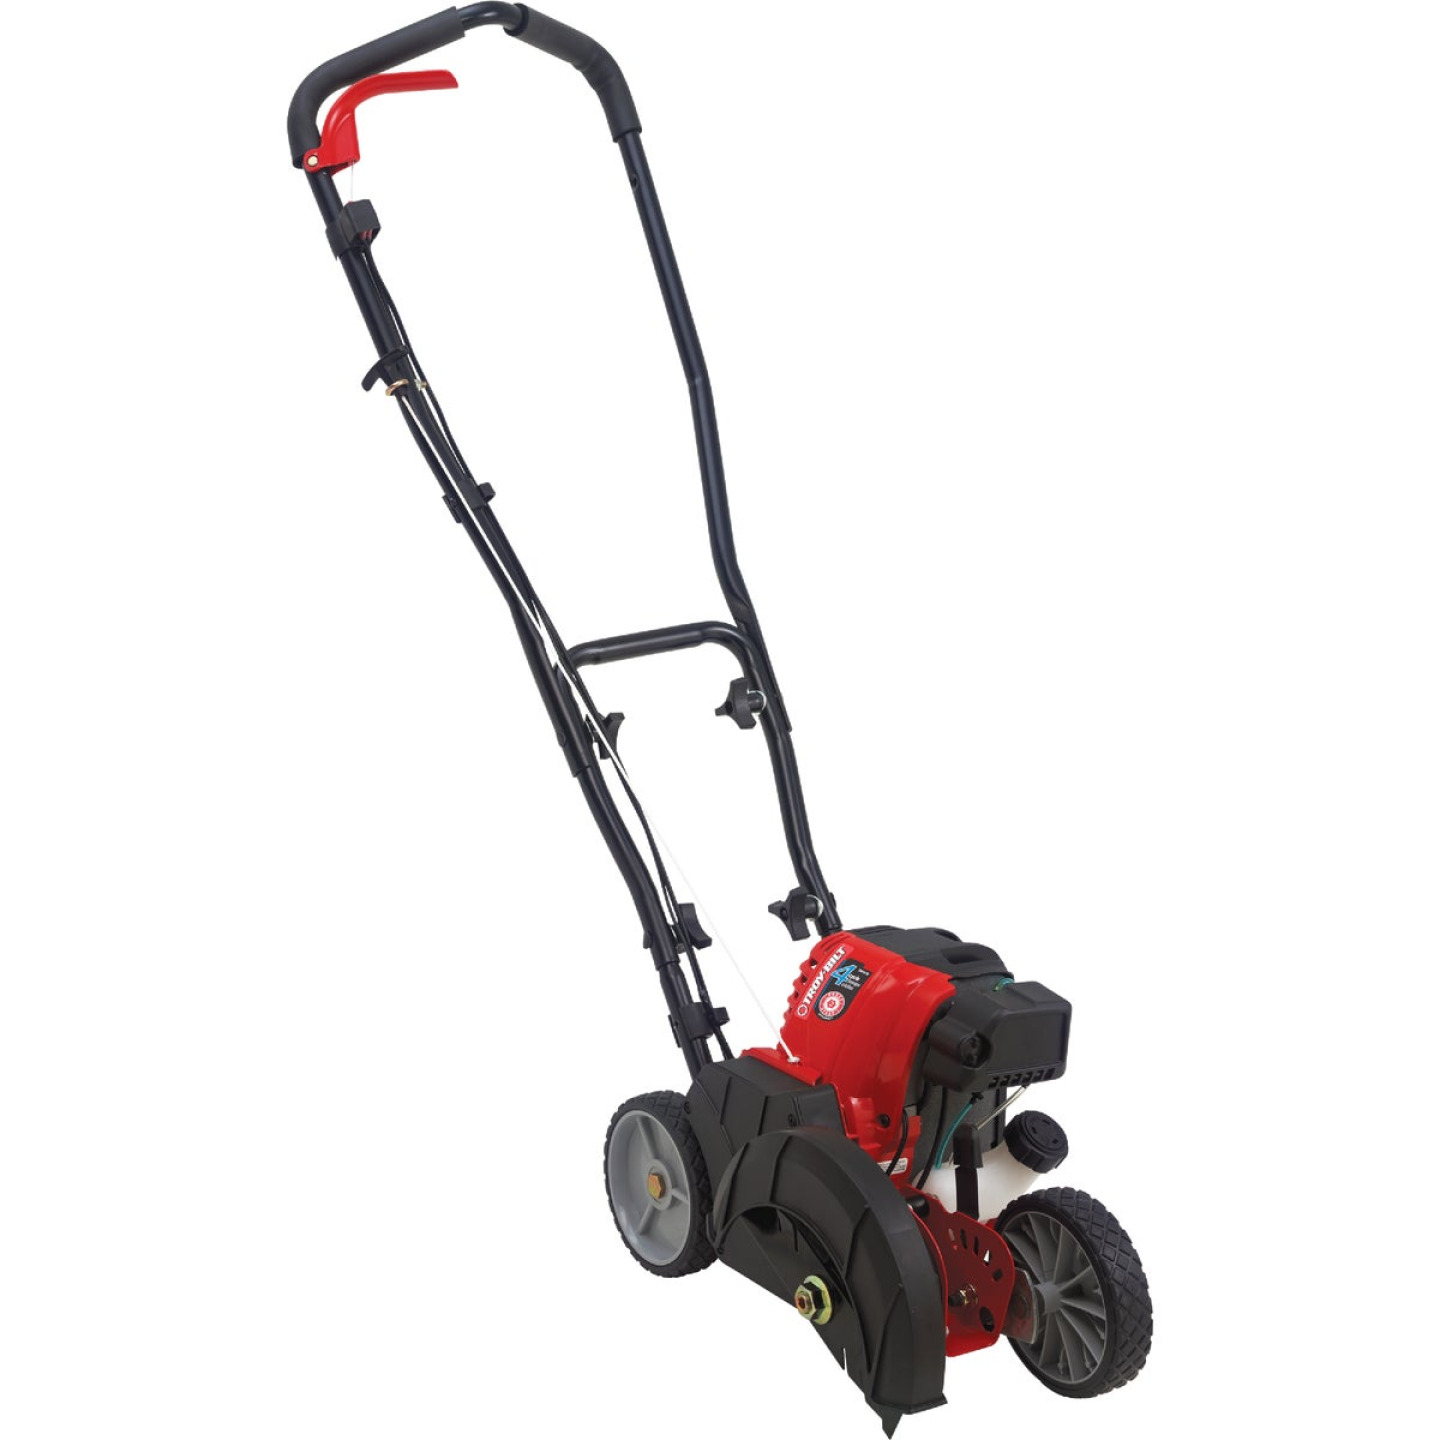 Troy-Bilt TBE304 9 In. 30cc 4-Cycle Gas Edger Image 1